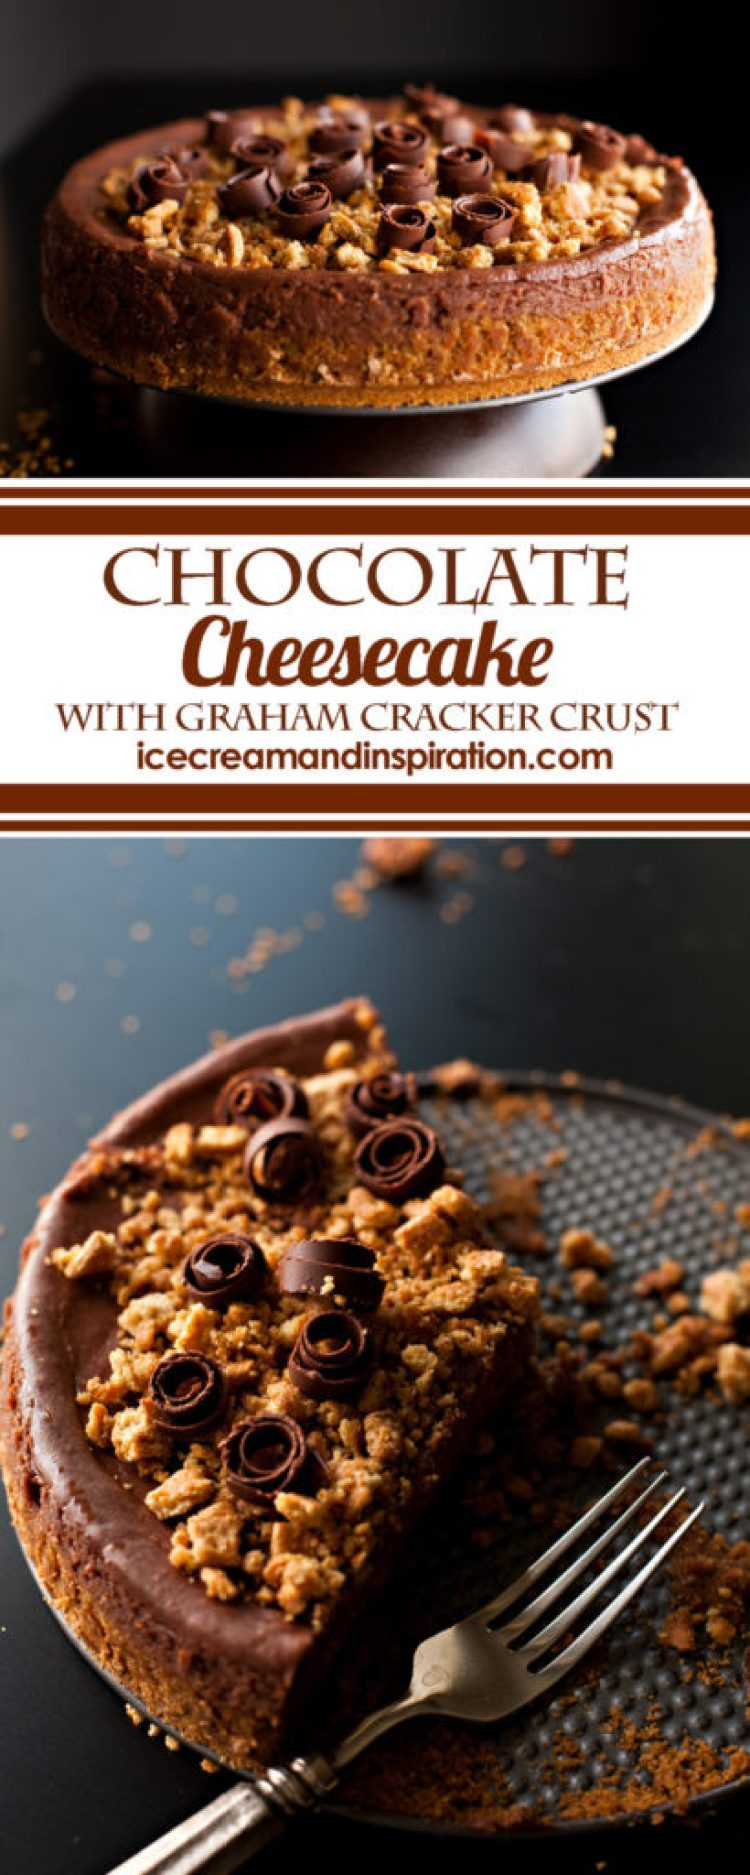 This Easy Chocolate Cheesecake recipe is rich, smooth, and decadent. Surprisingly simple to make, with no water bath. A classic graham cracker crust rounds out this must-have recipe for the best chocolate cheesecake ever!